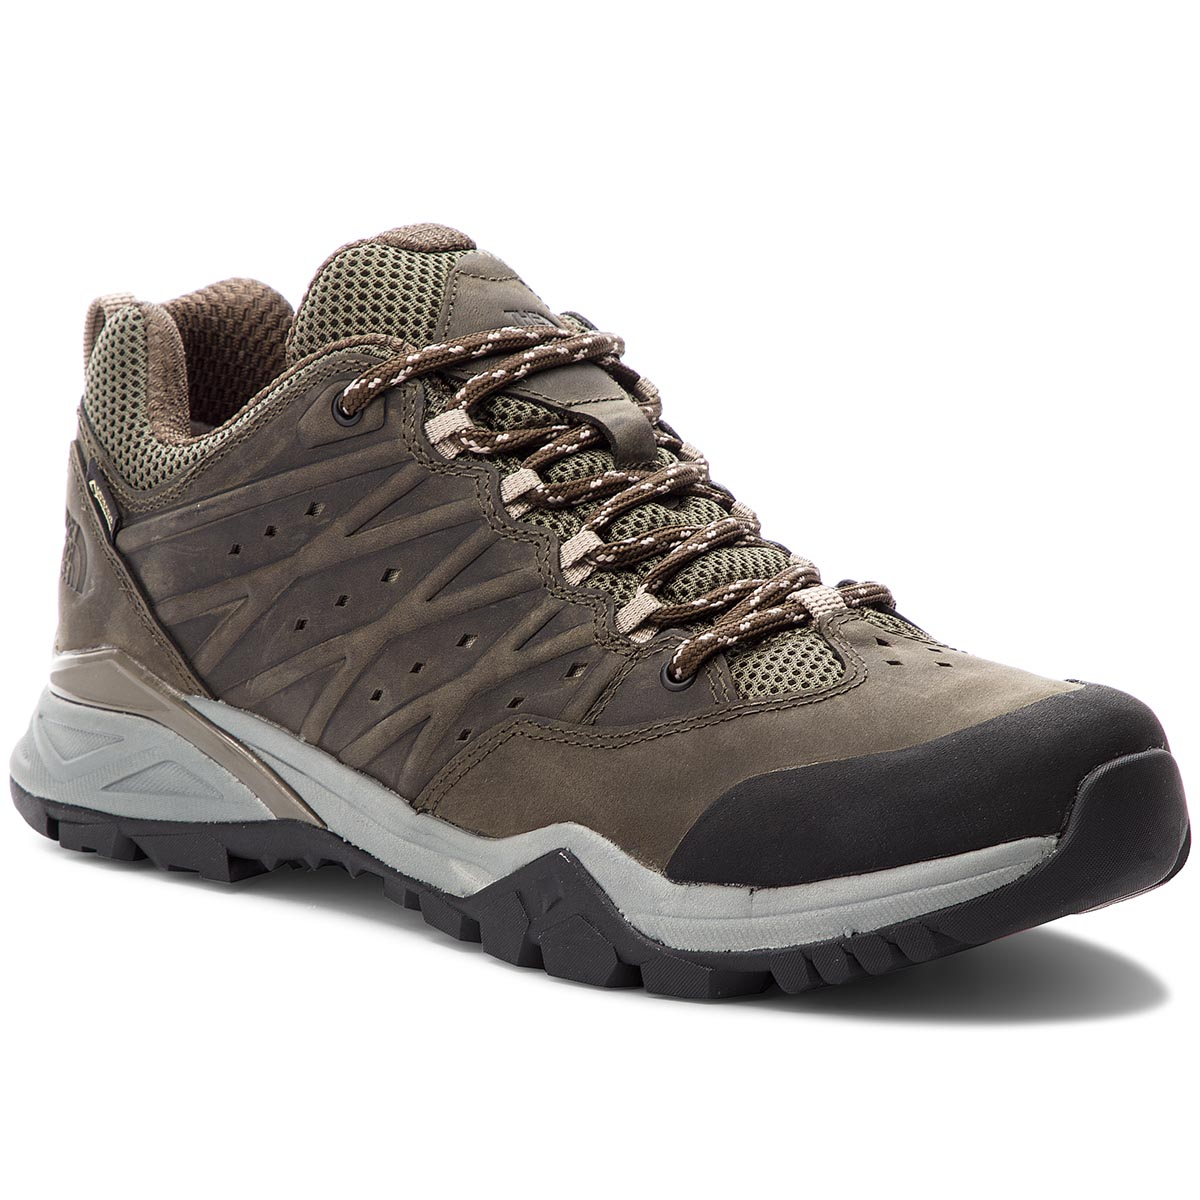 Trekkings THE NORTH FACE - Hedgehog Hike II Gtx GORE-TEX T939HZ4DD Tarmac Green/Burnt Olive Green